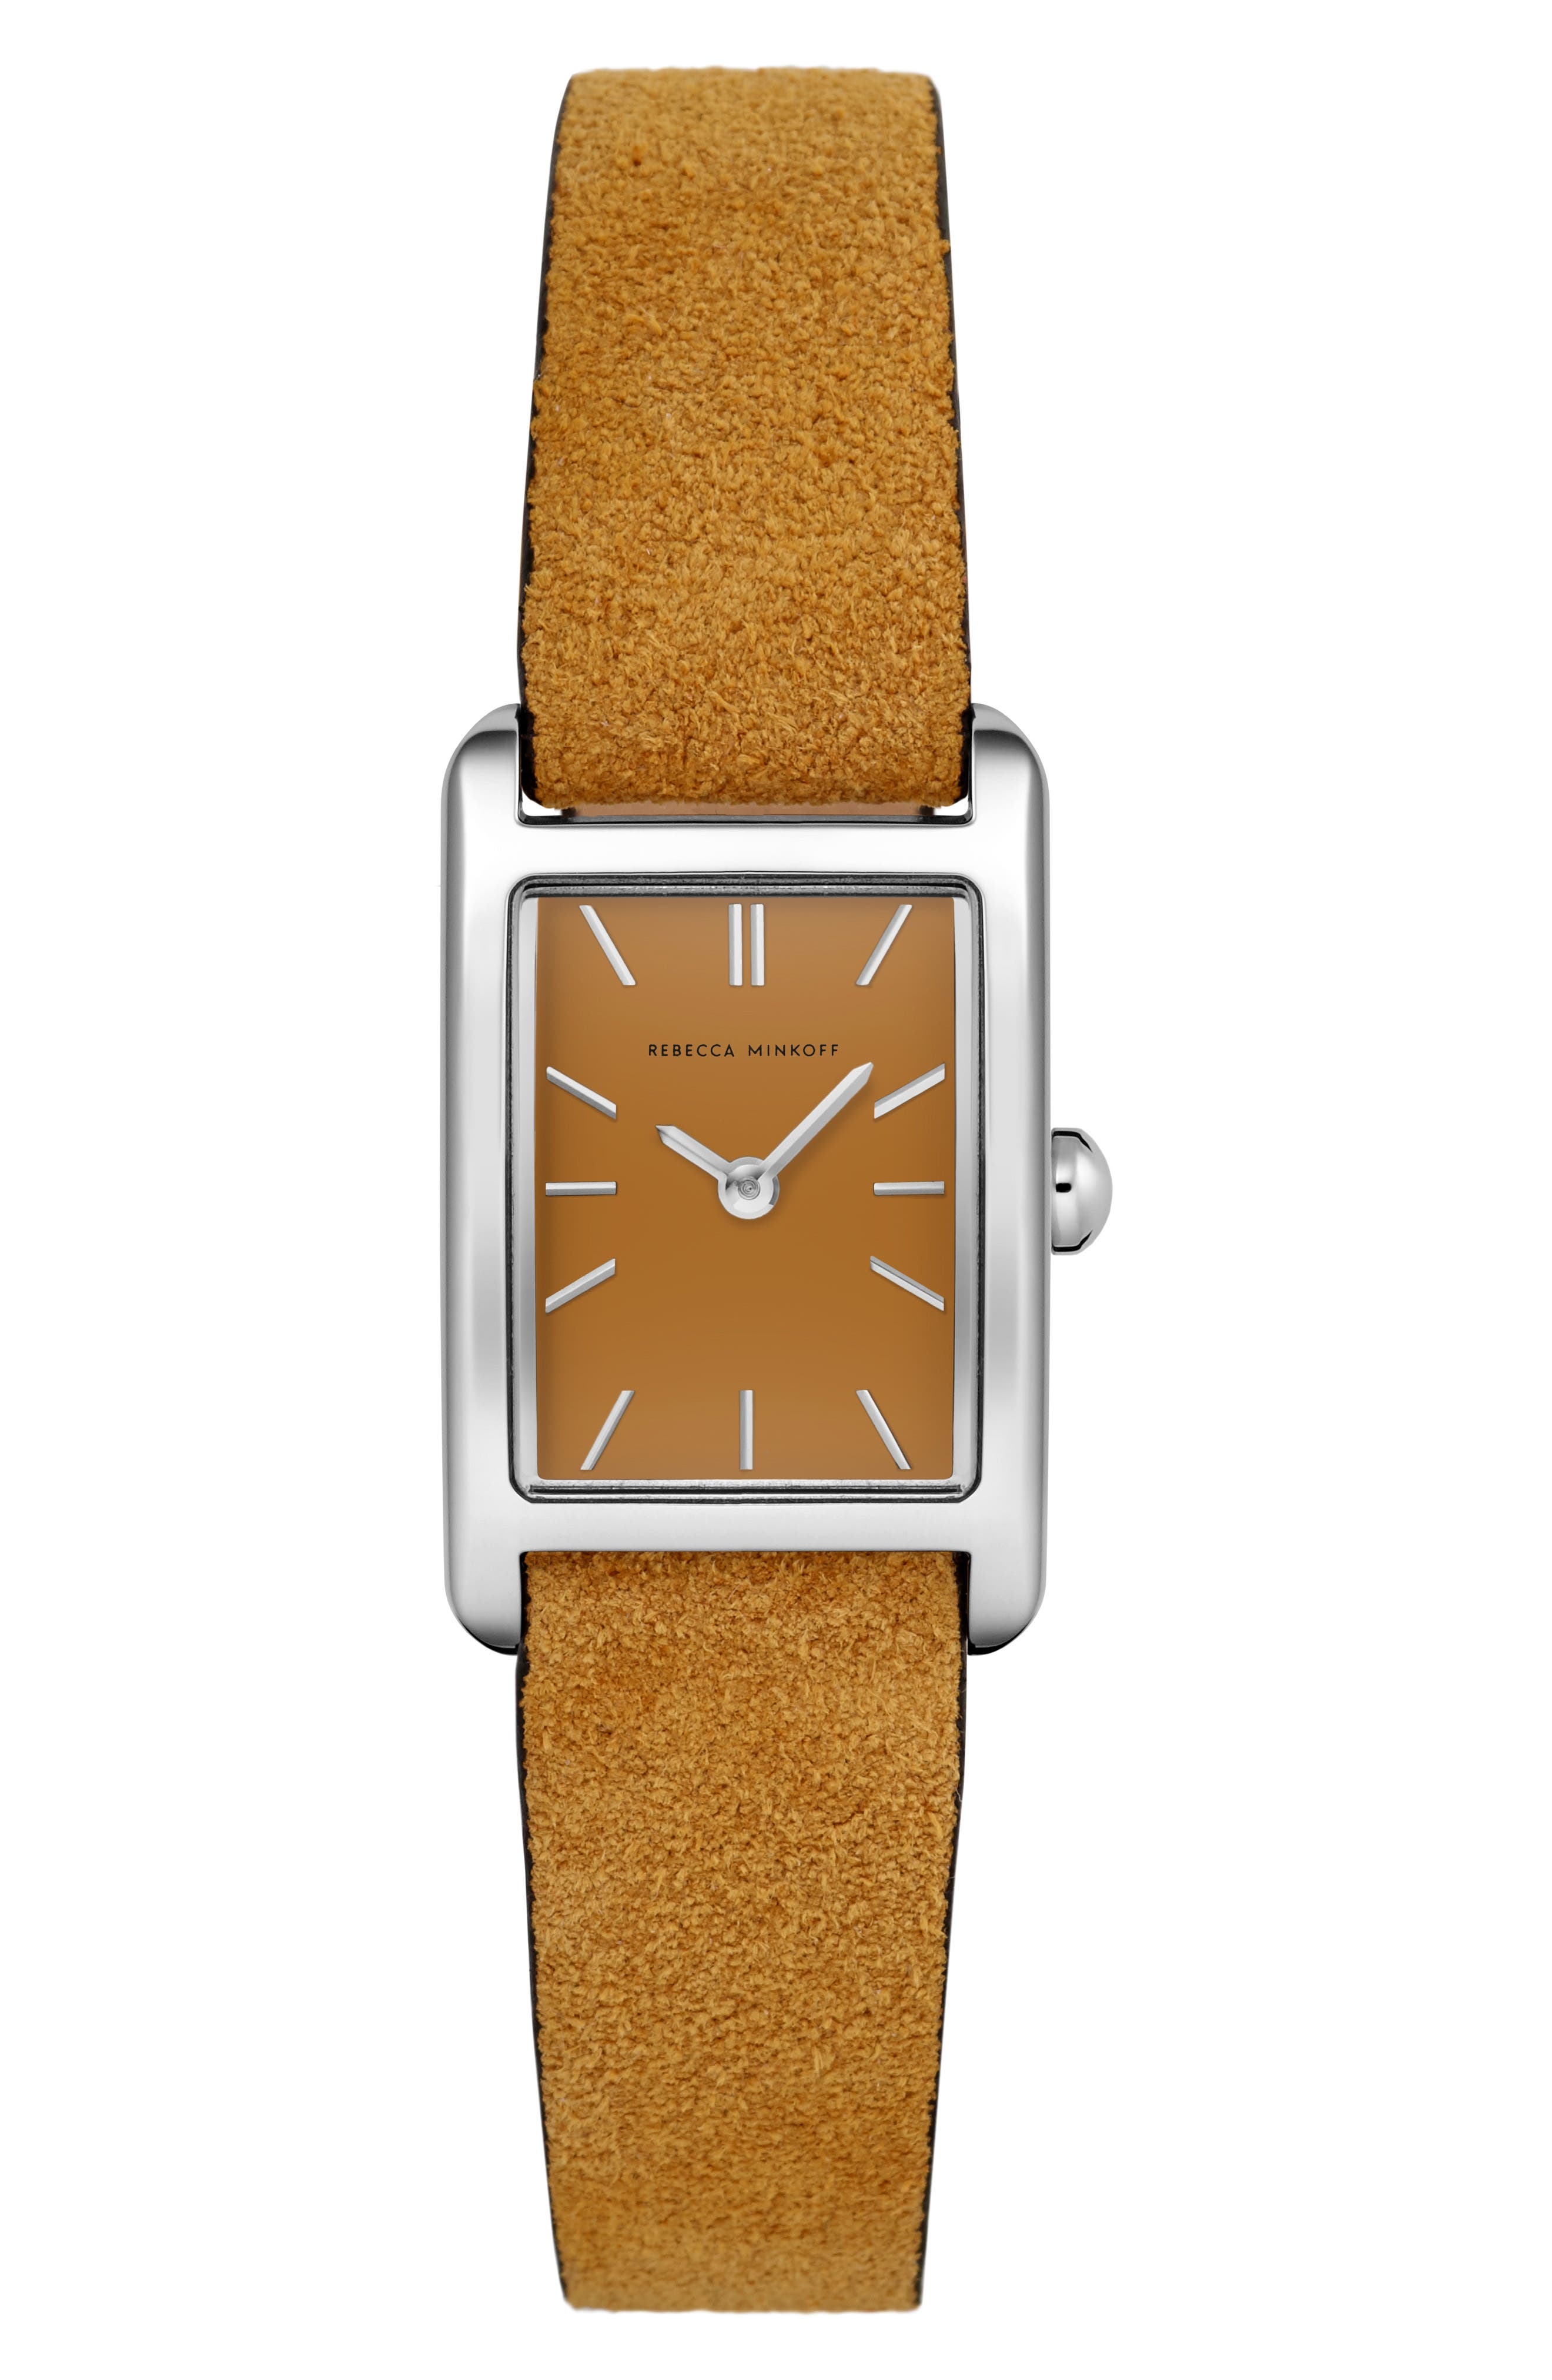 Rebecca Minkoff Watches Moment Leather Strap Watch, 19mm x 30mm